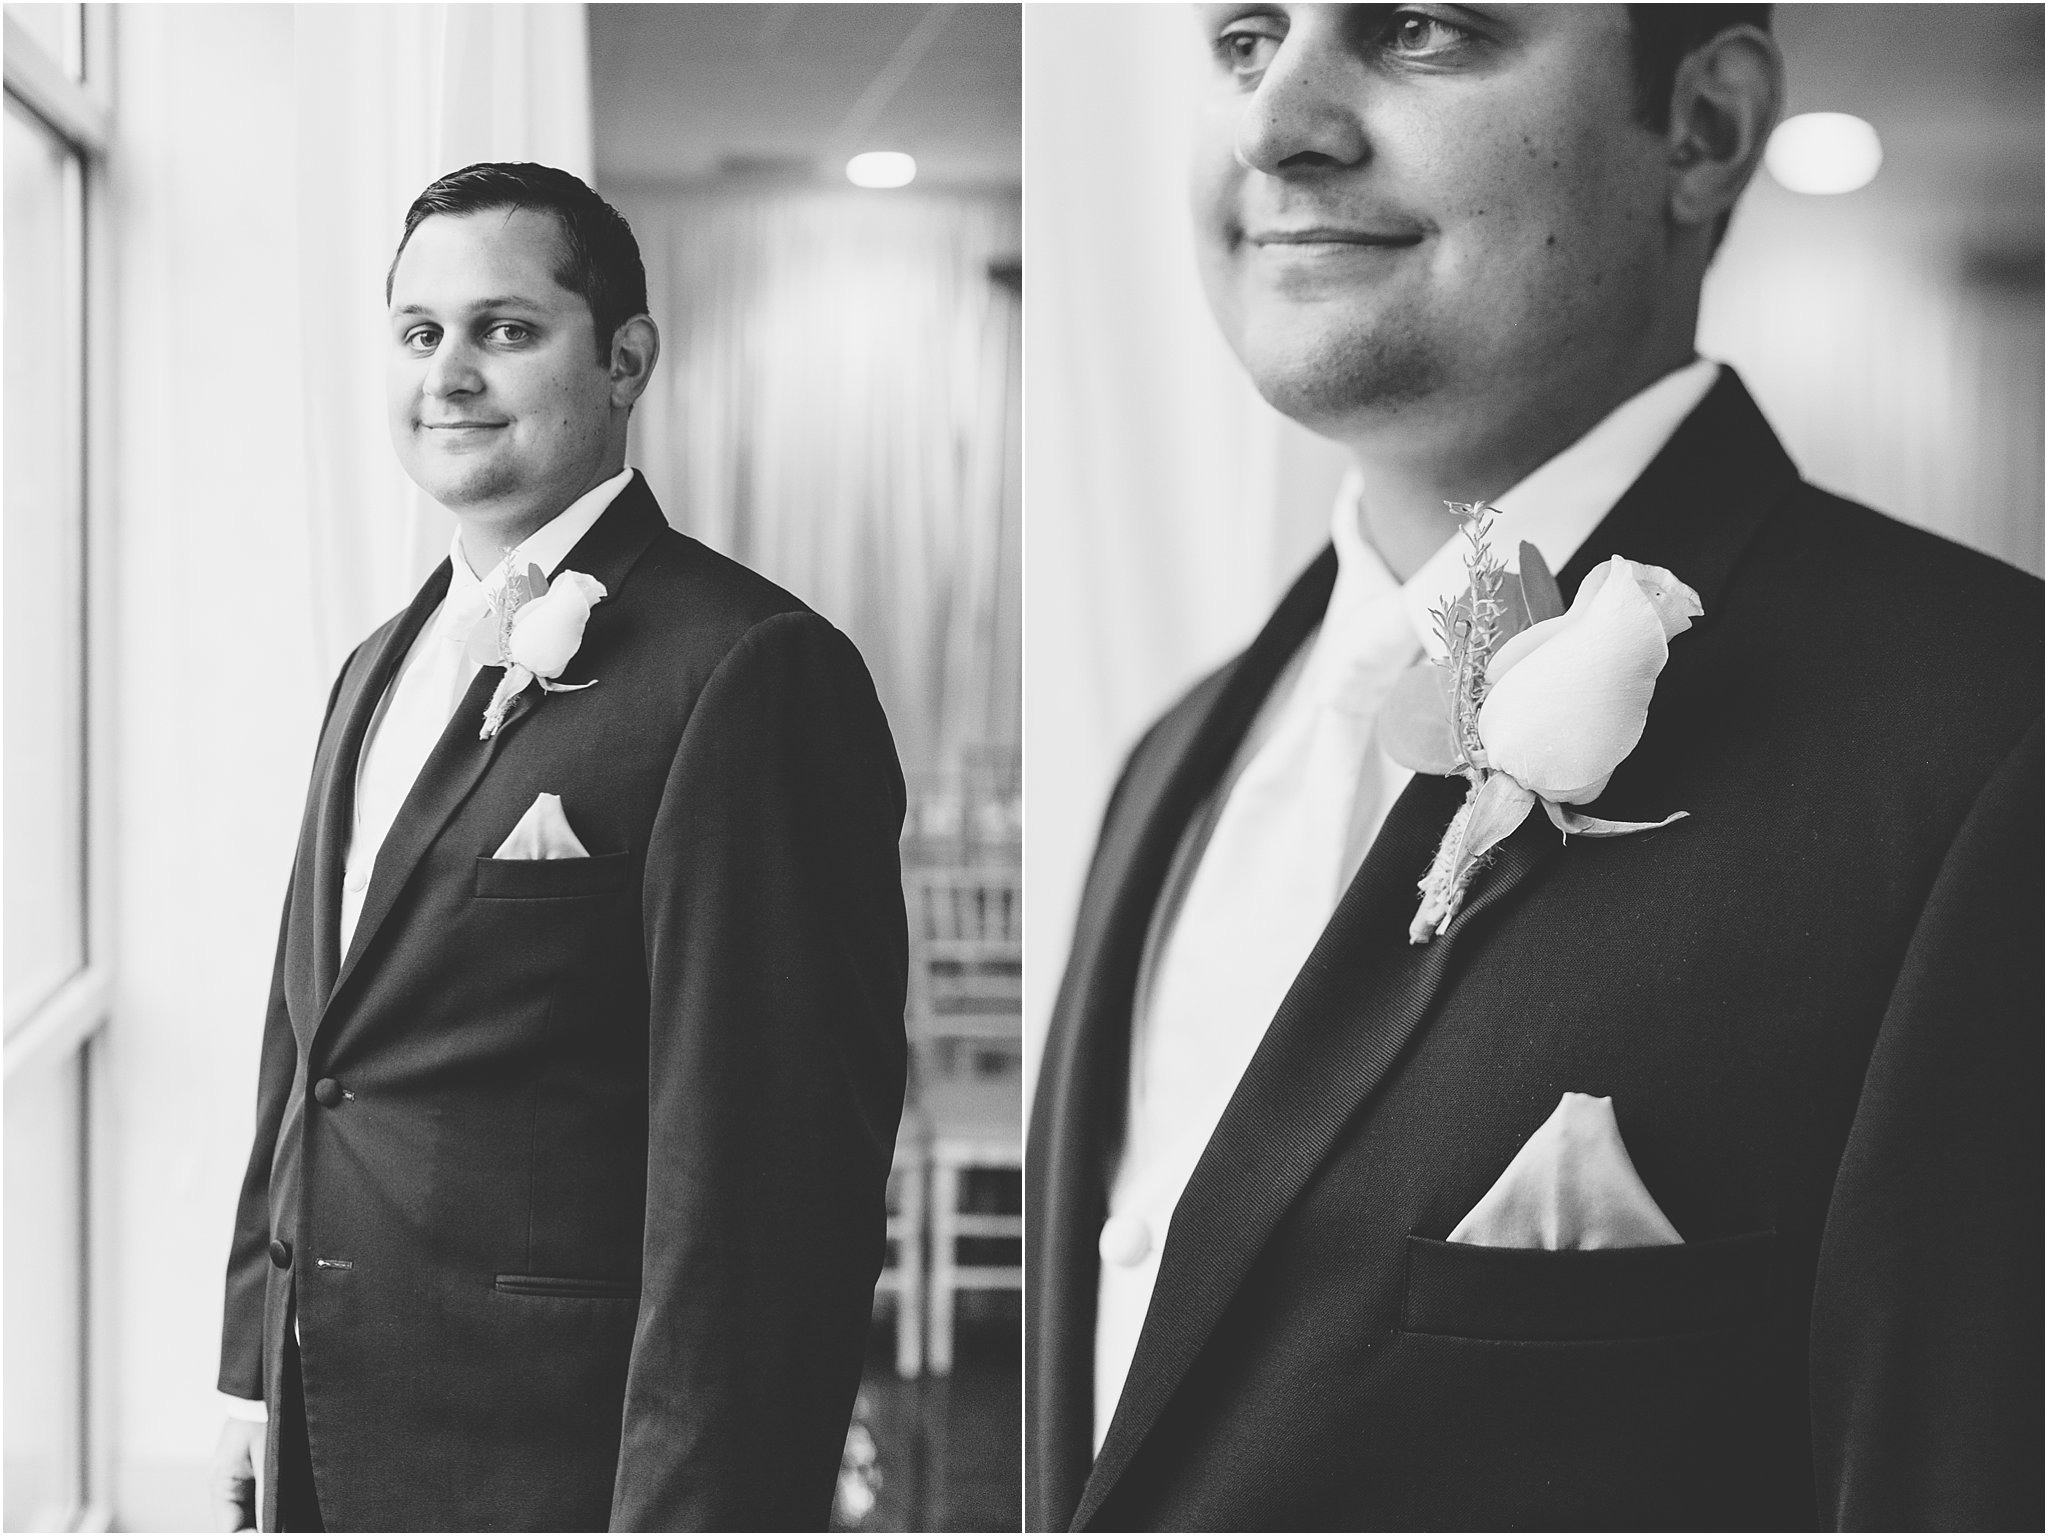 jessica_ryan_photography_virginia_wedding_photographer_wedding_hurricane_norfolk_botanical_gardens_hurricane_matthew_wedding_3572